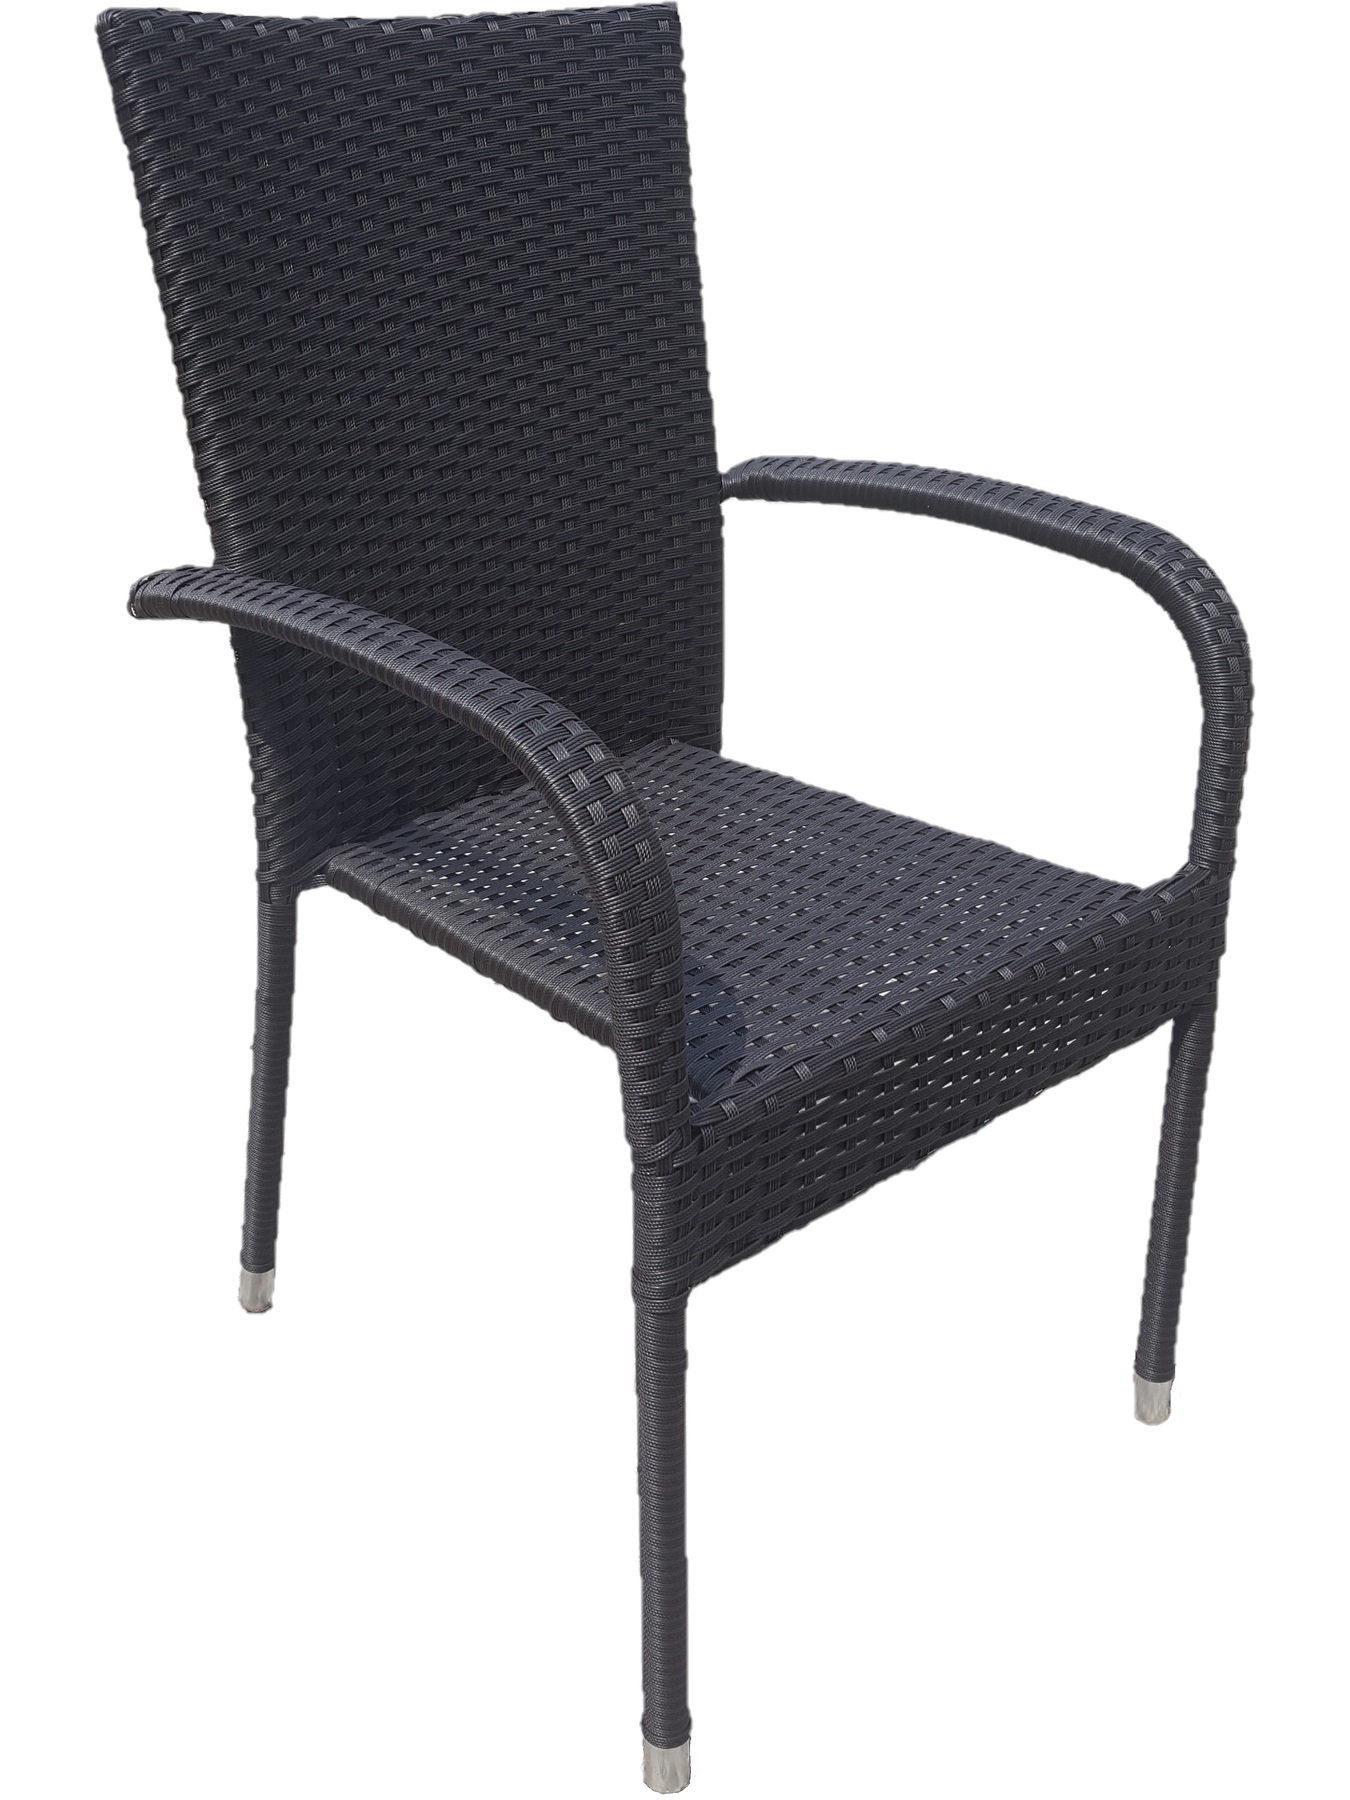 Faux Rattan Wicker Chair With Armrests Color Black